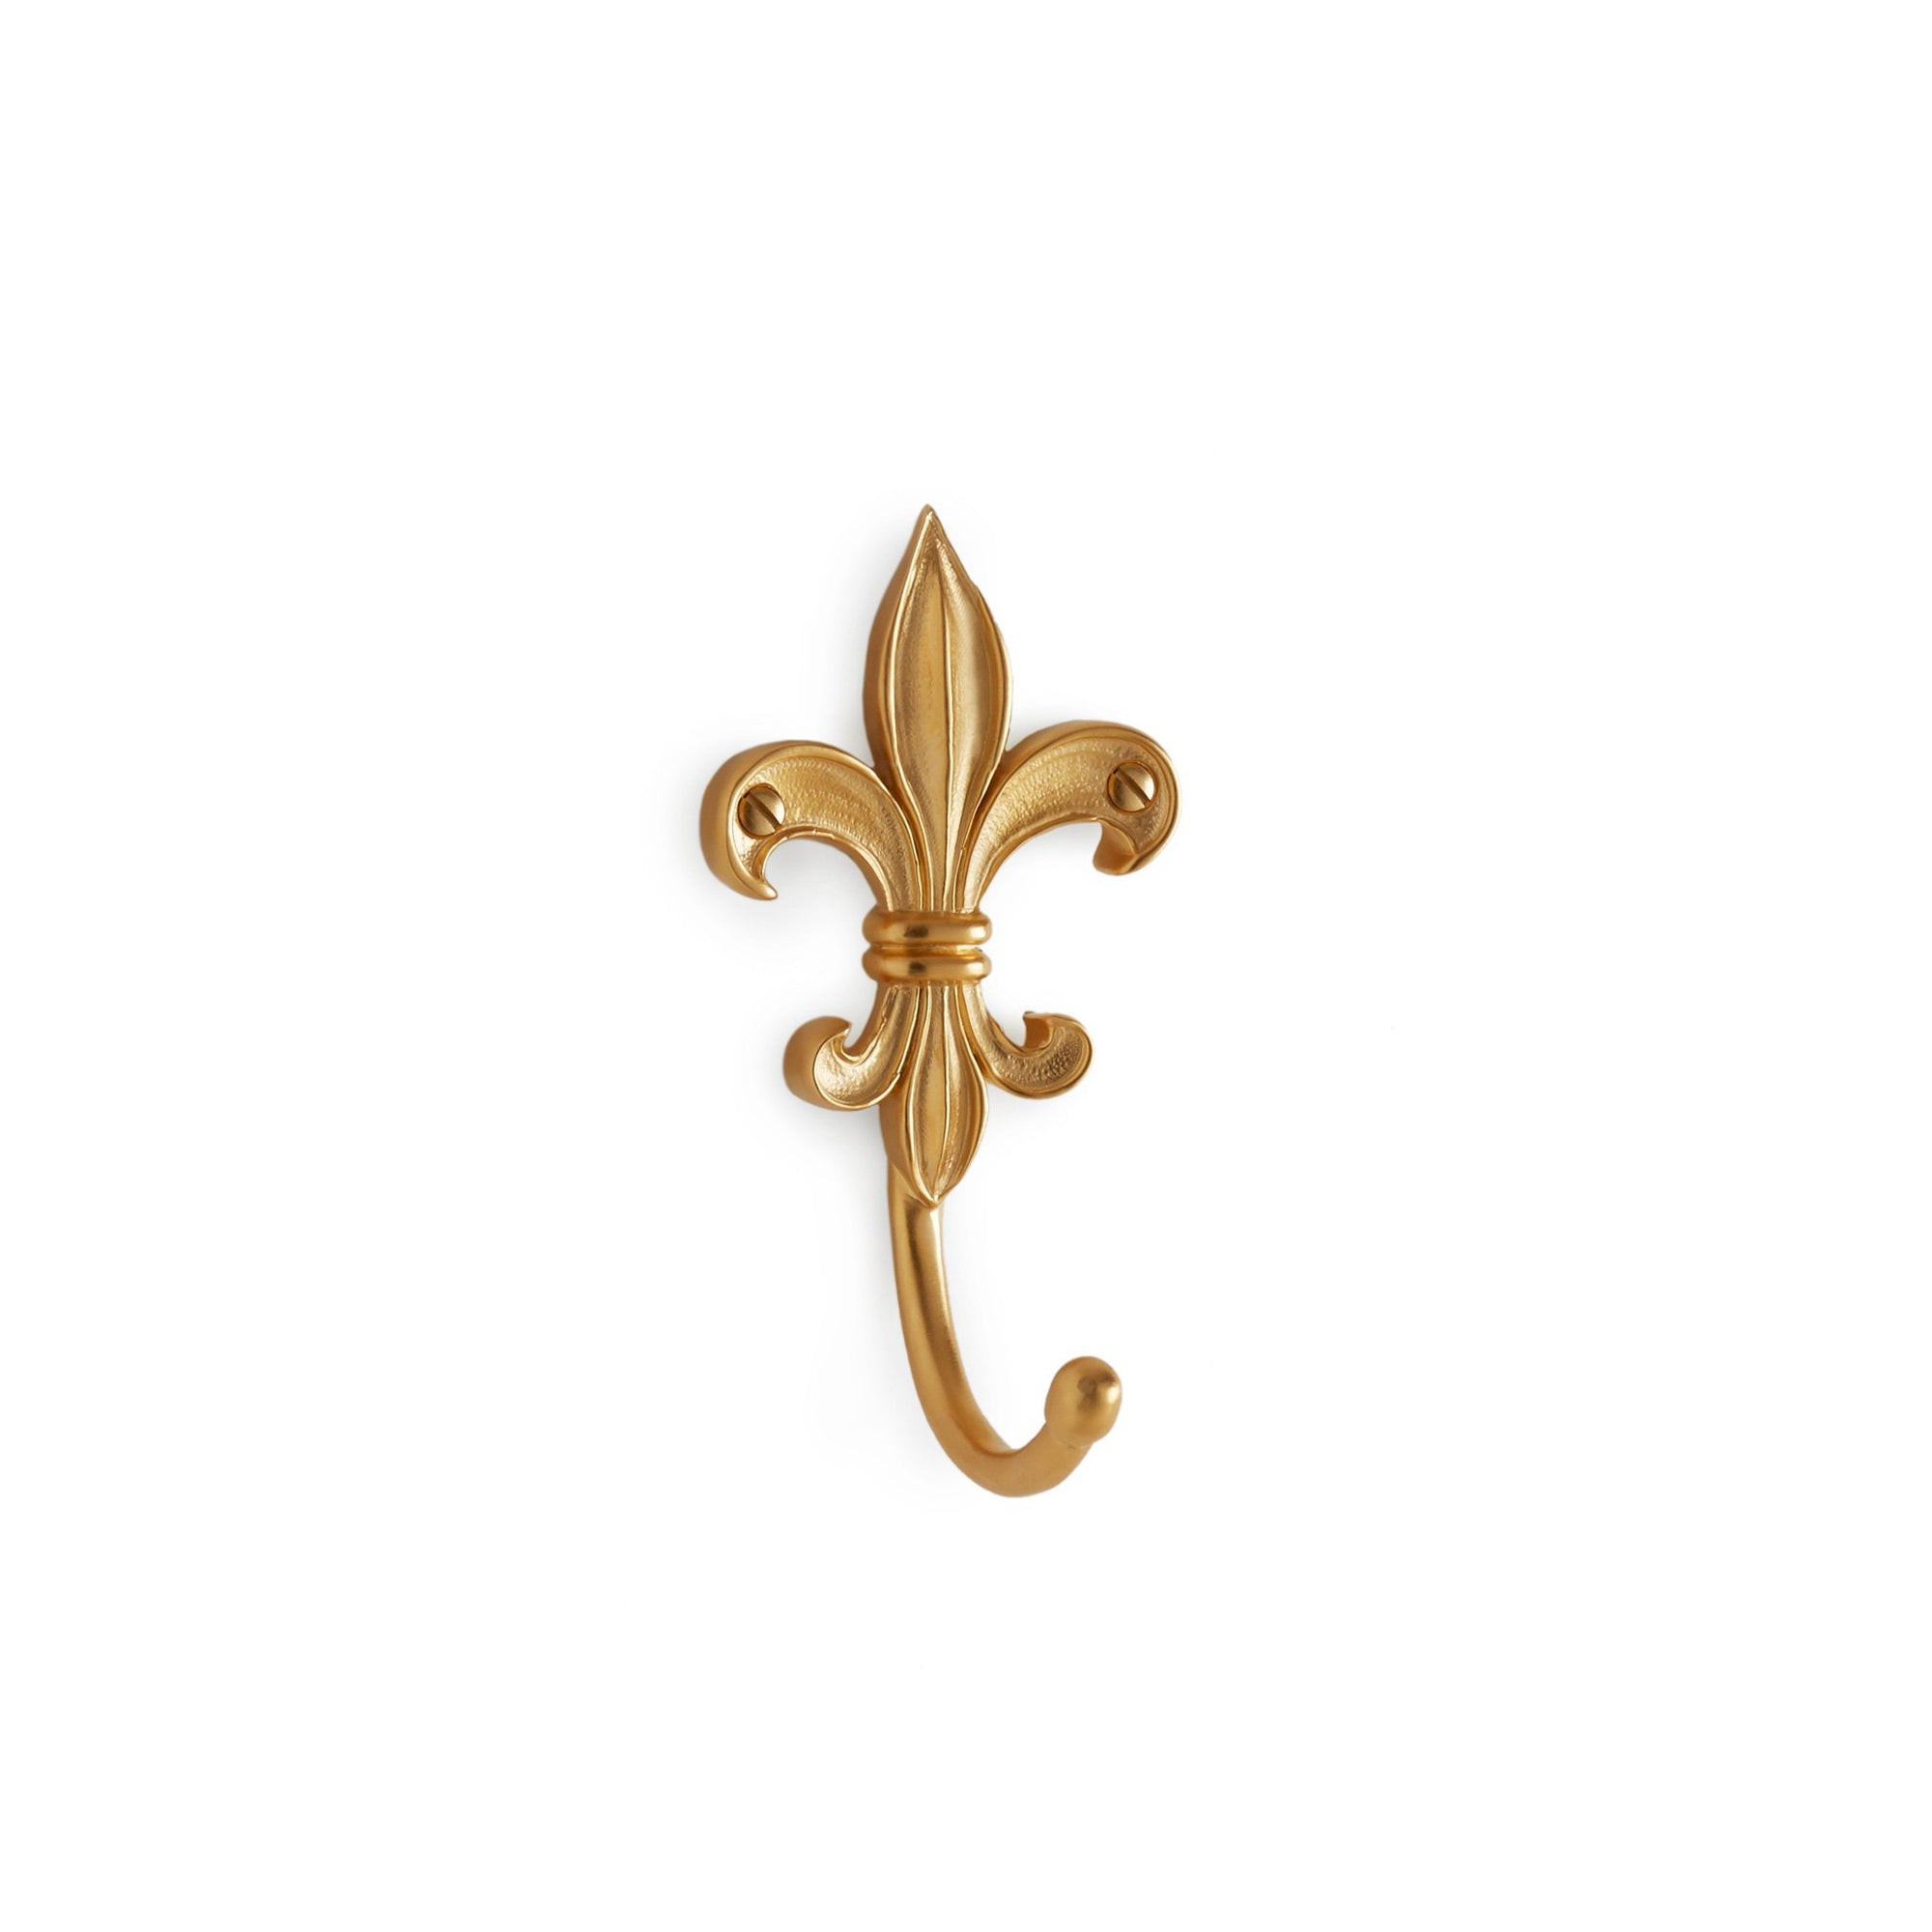 3407-GP Sherle Wagner International Fleur De Lis Hook in Gold Plate and Polished Chrome metal finish